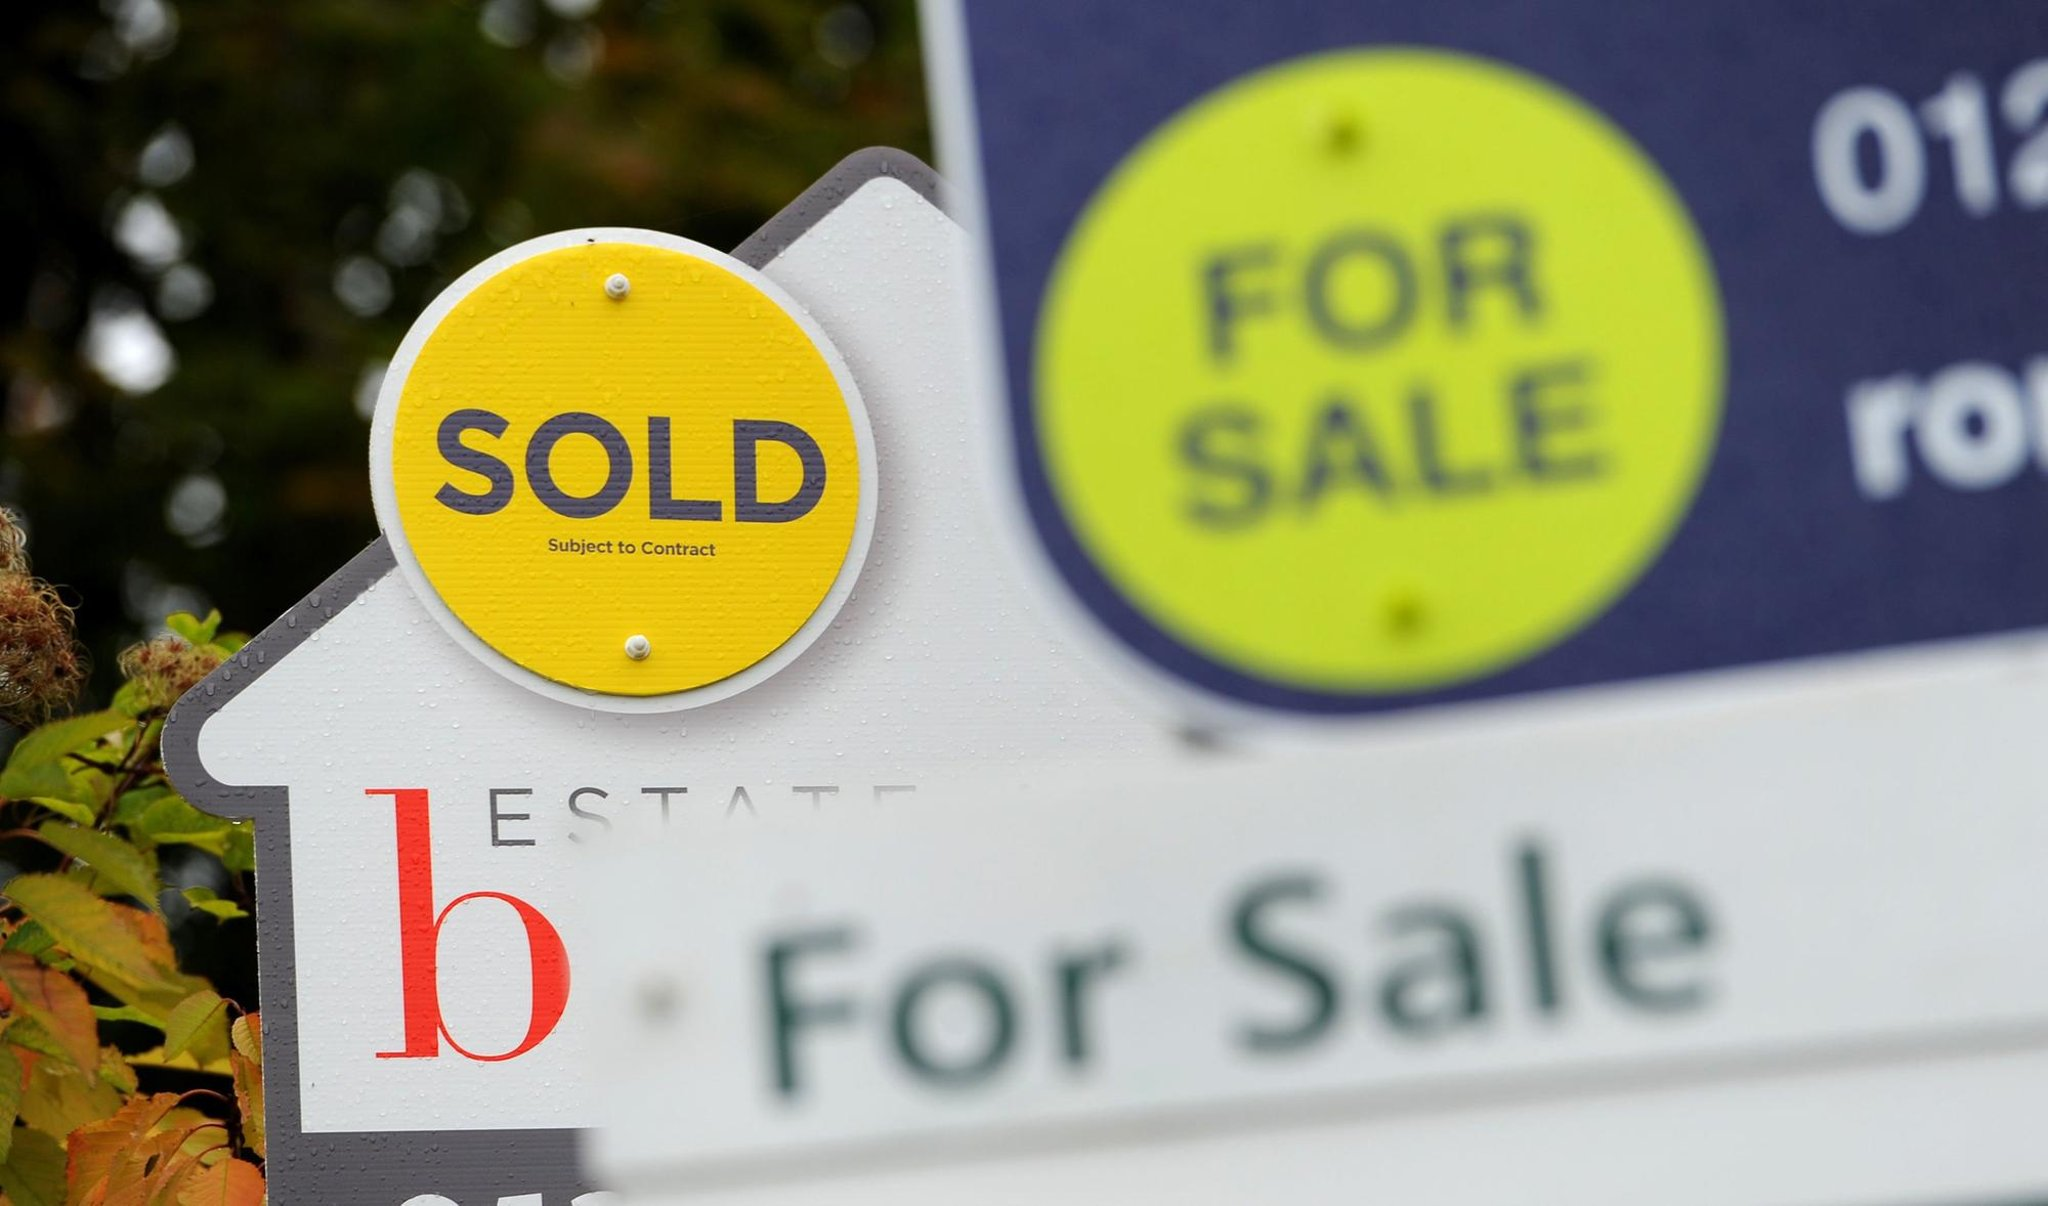 Property experts urge Scotland to match Chancellor's expected stamp duty relief extension